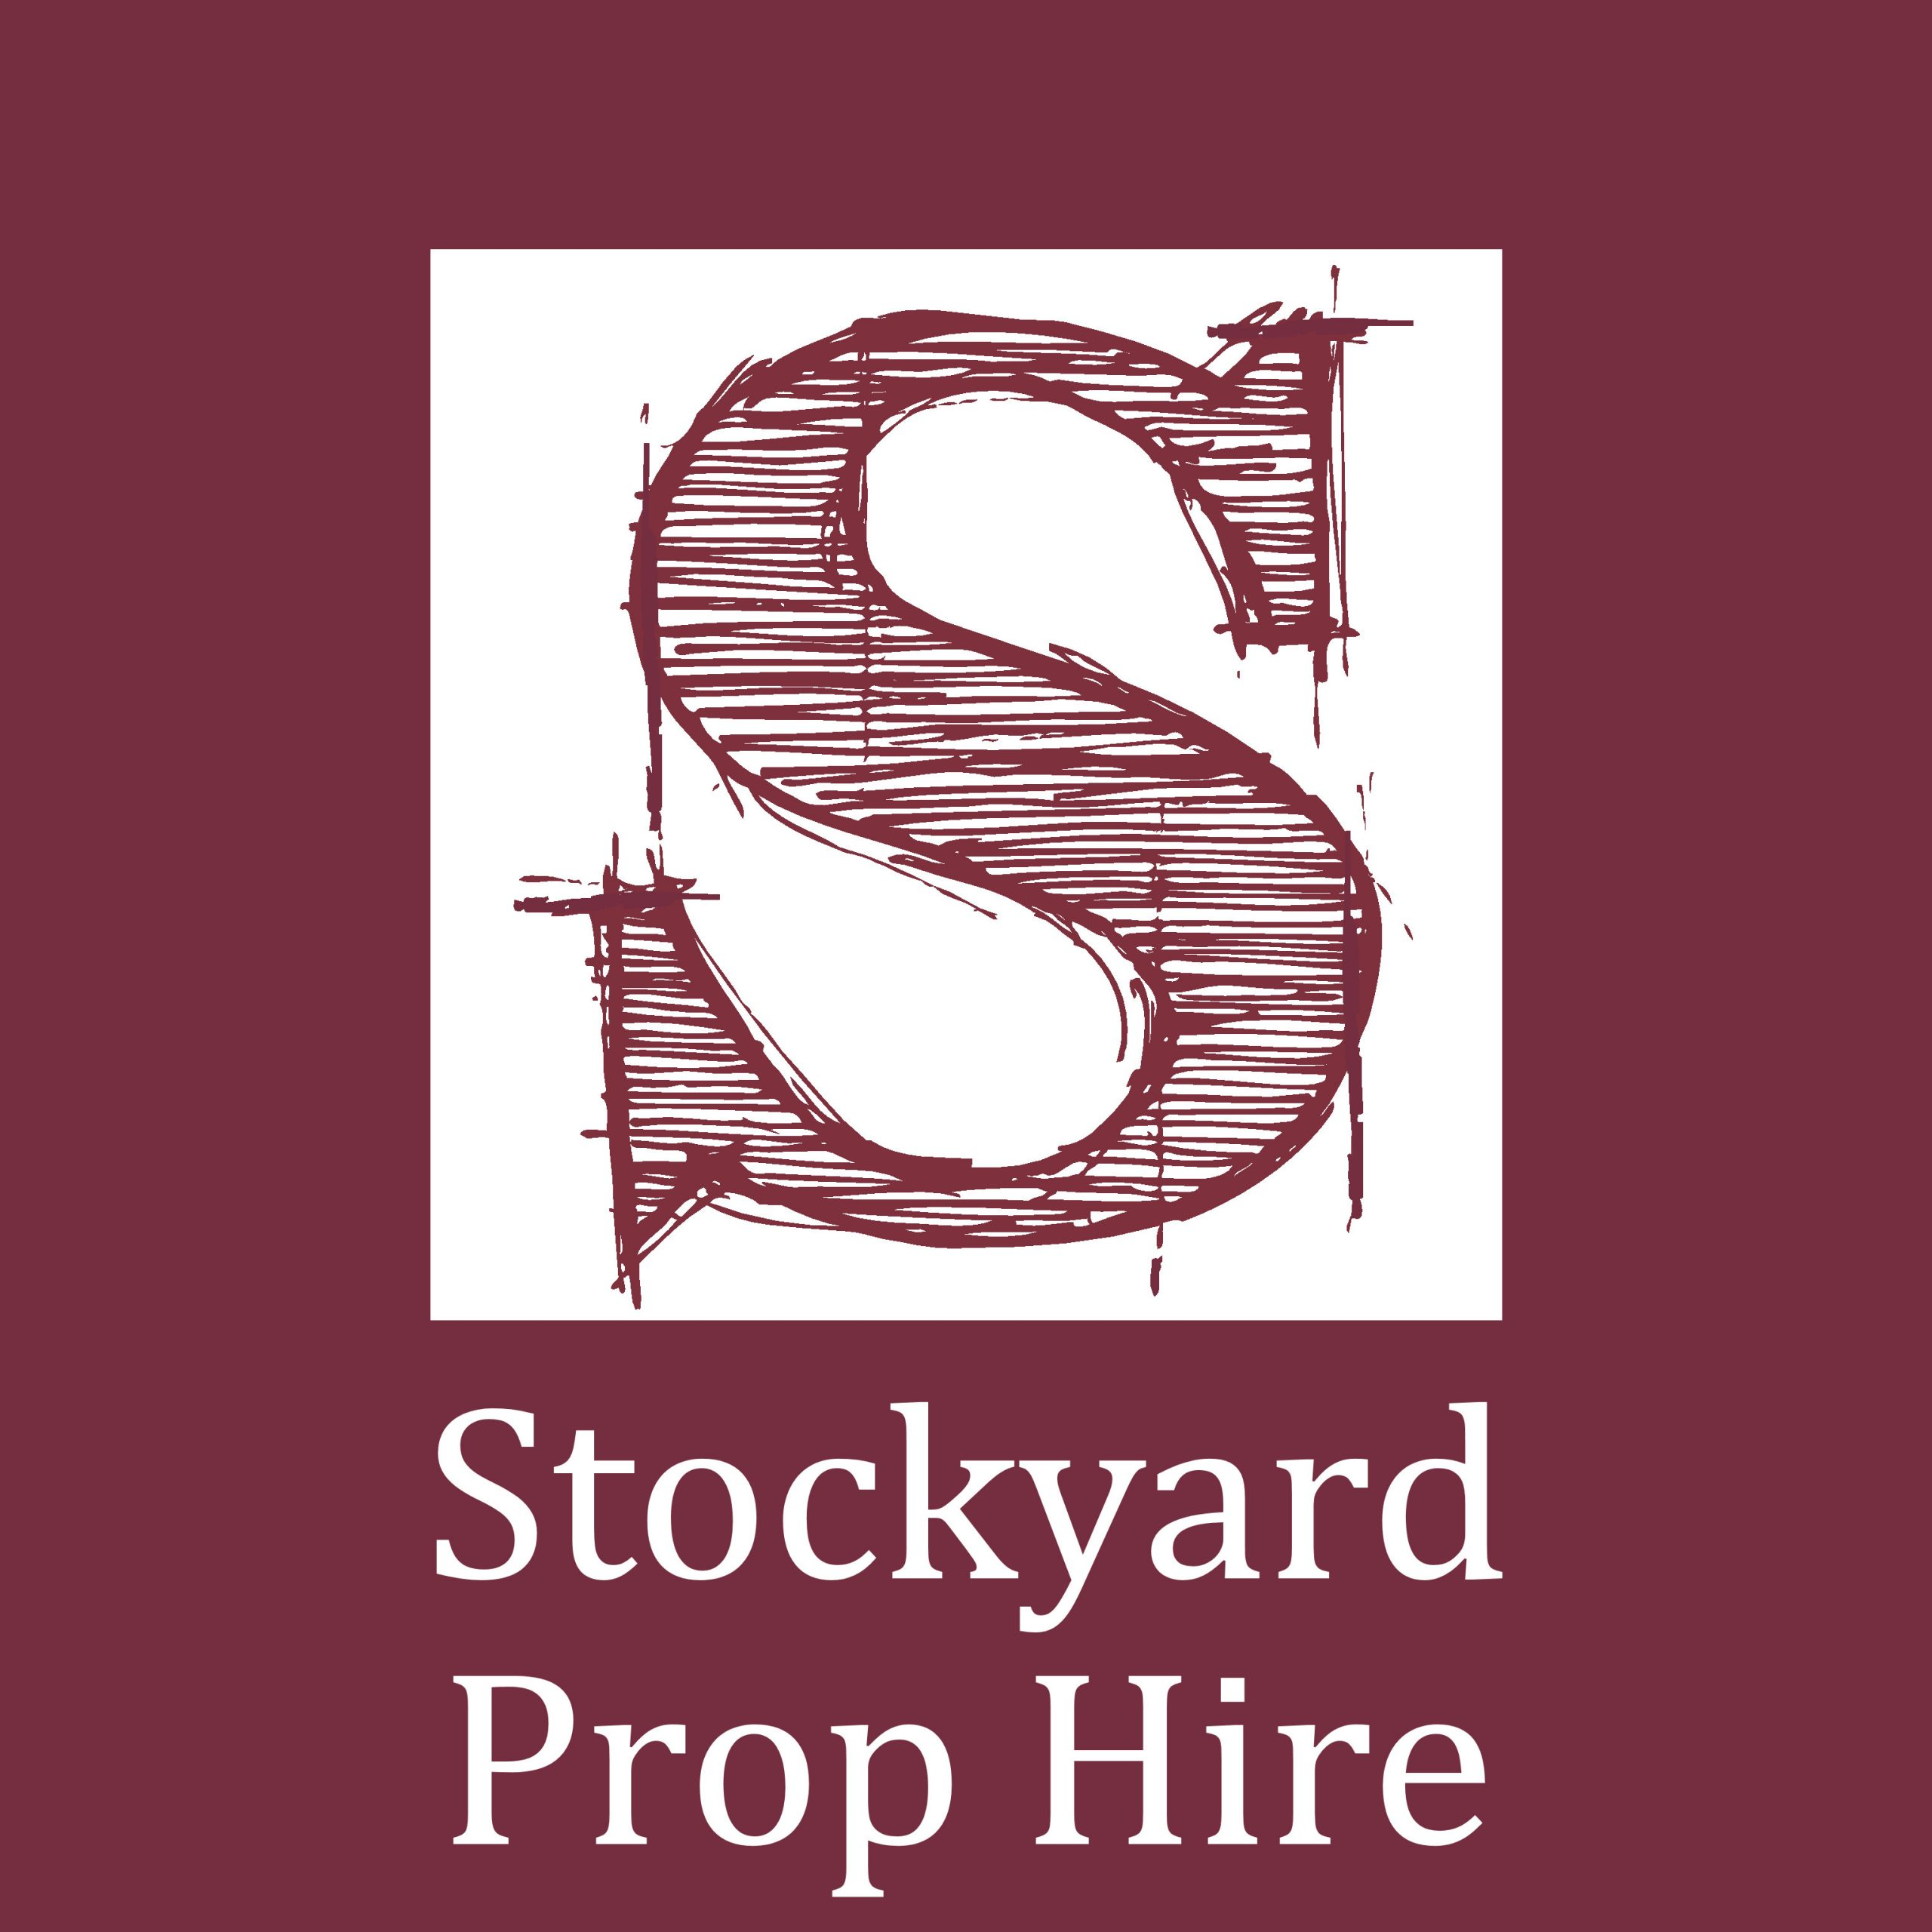 Stockyard - Prop Hire